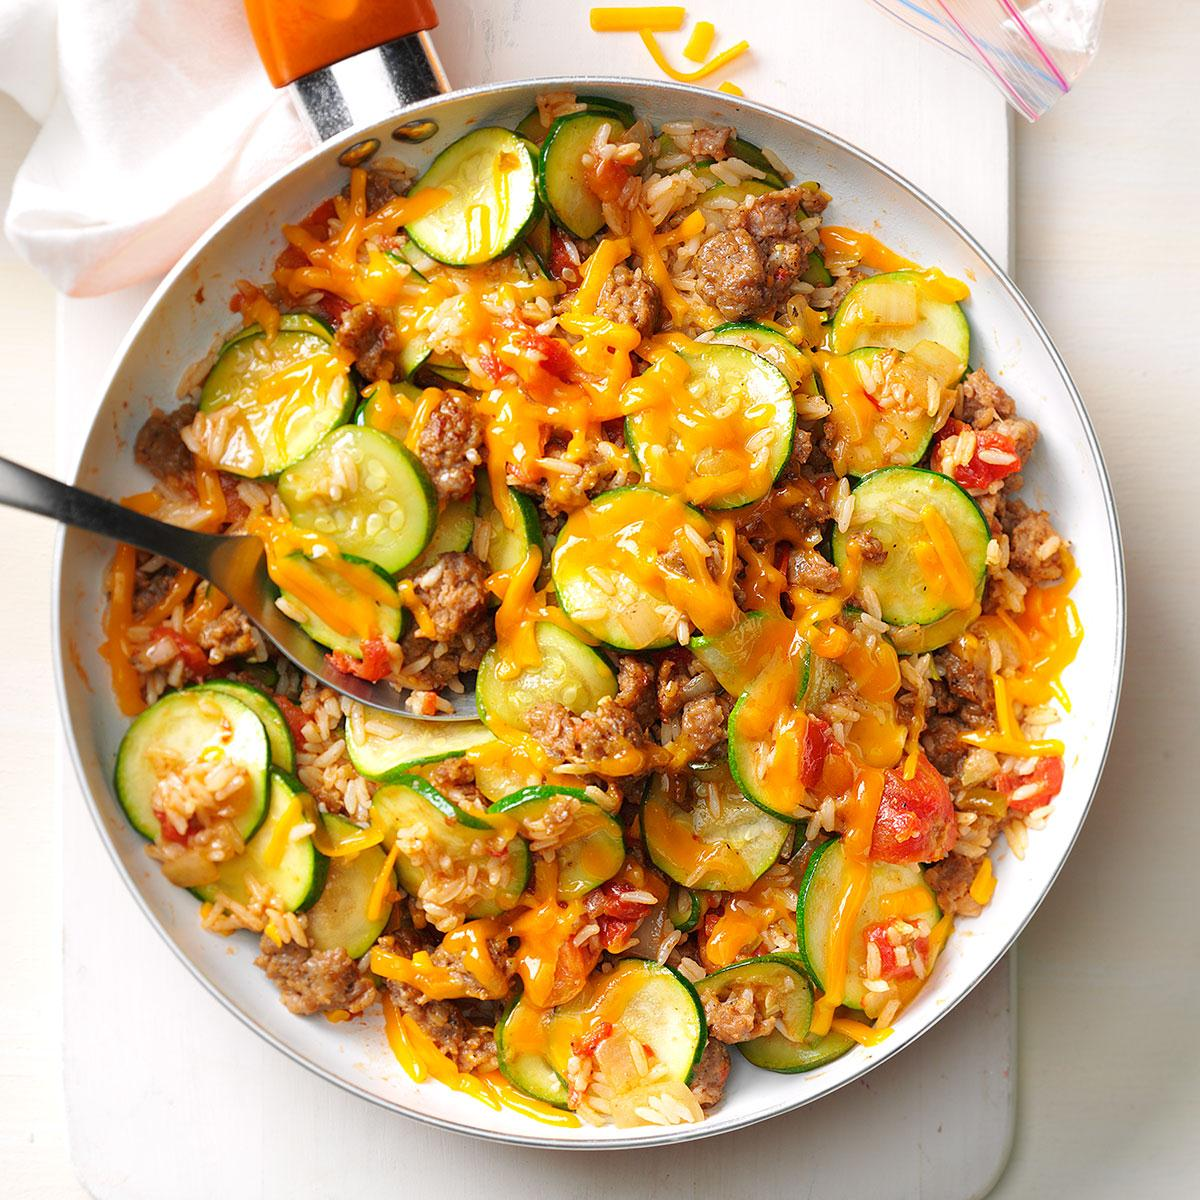 Pork with zucchini - a simple and tasty dish